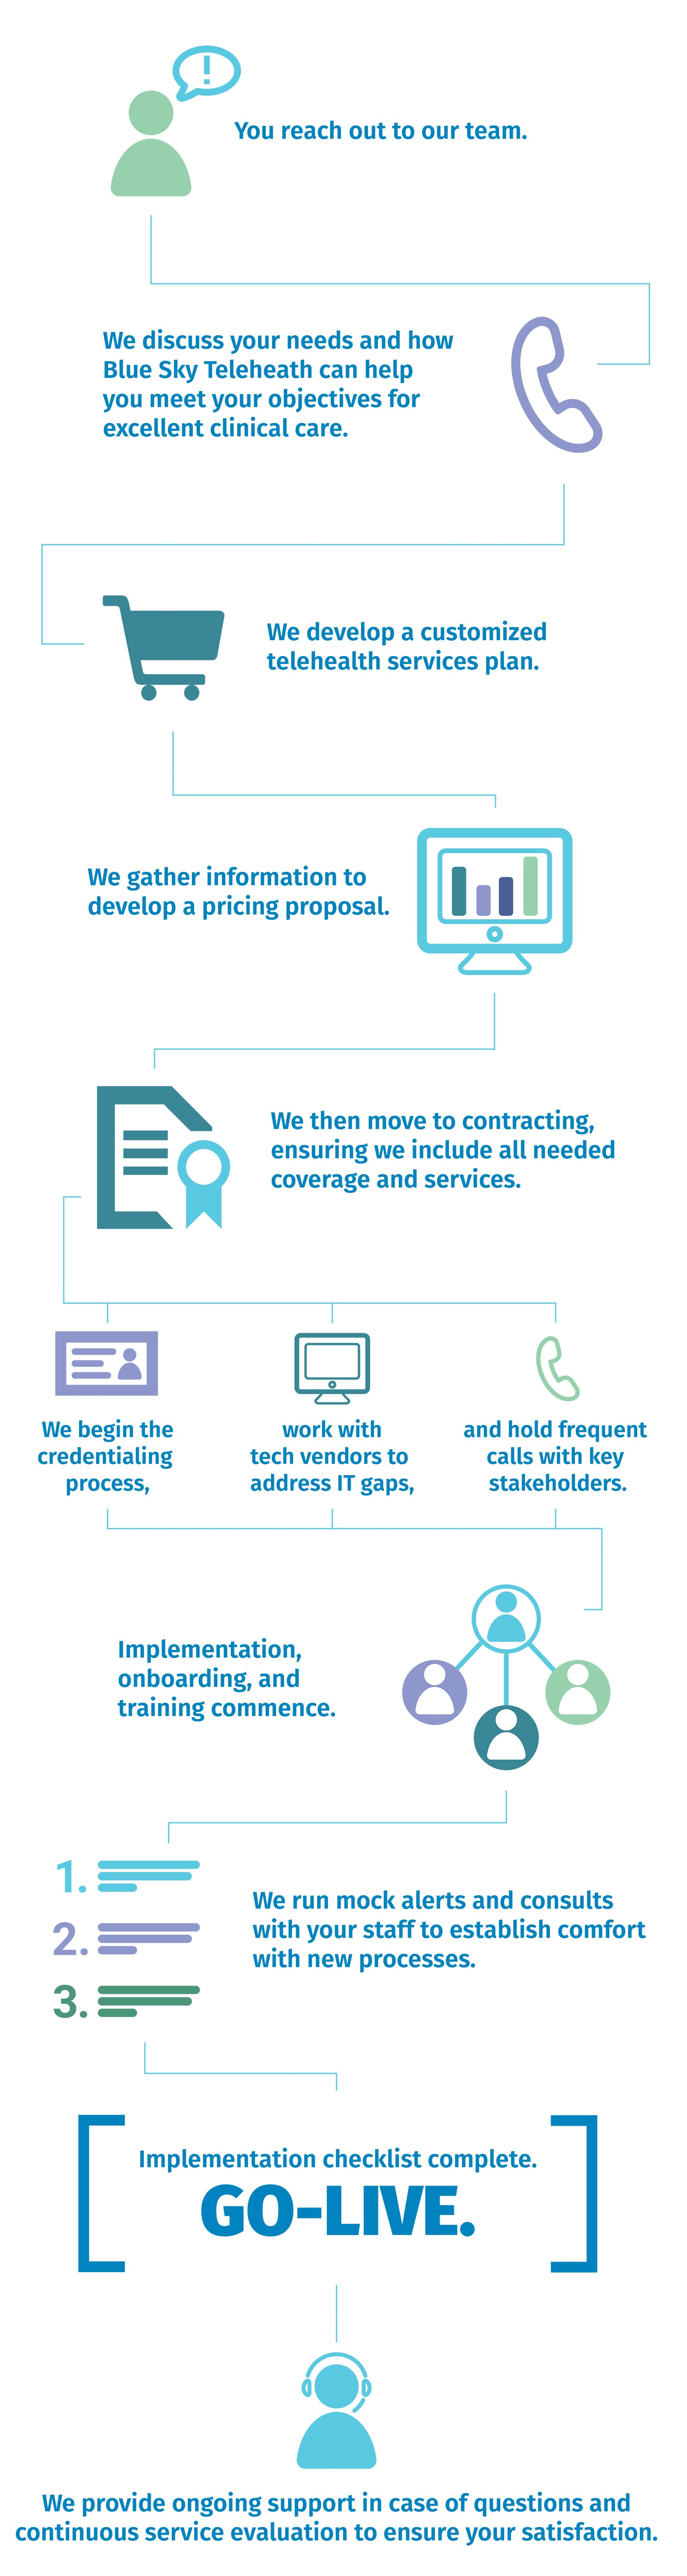 Infographic on How Blue Sky Telehealth Works